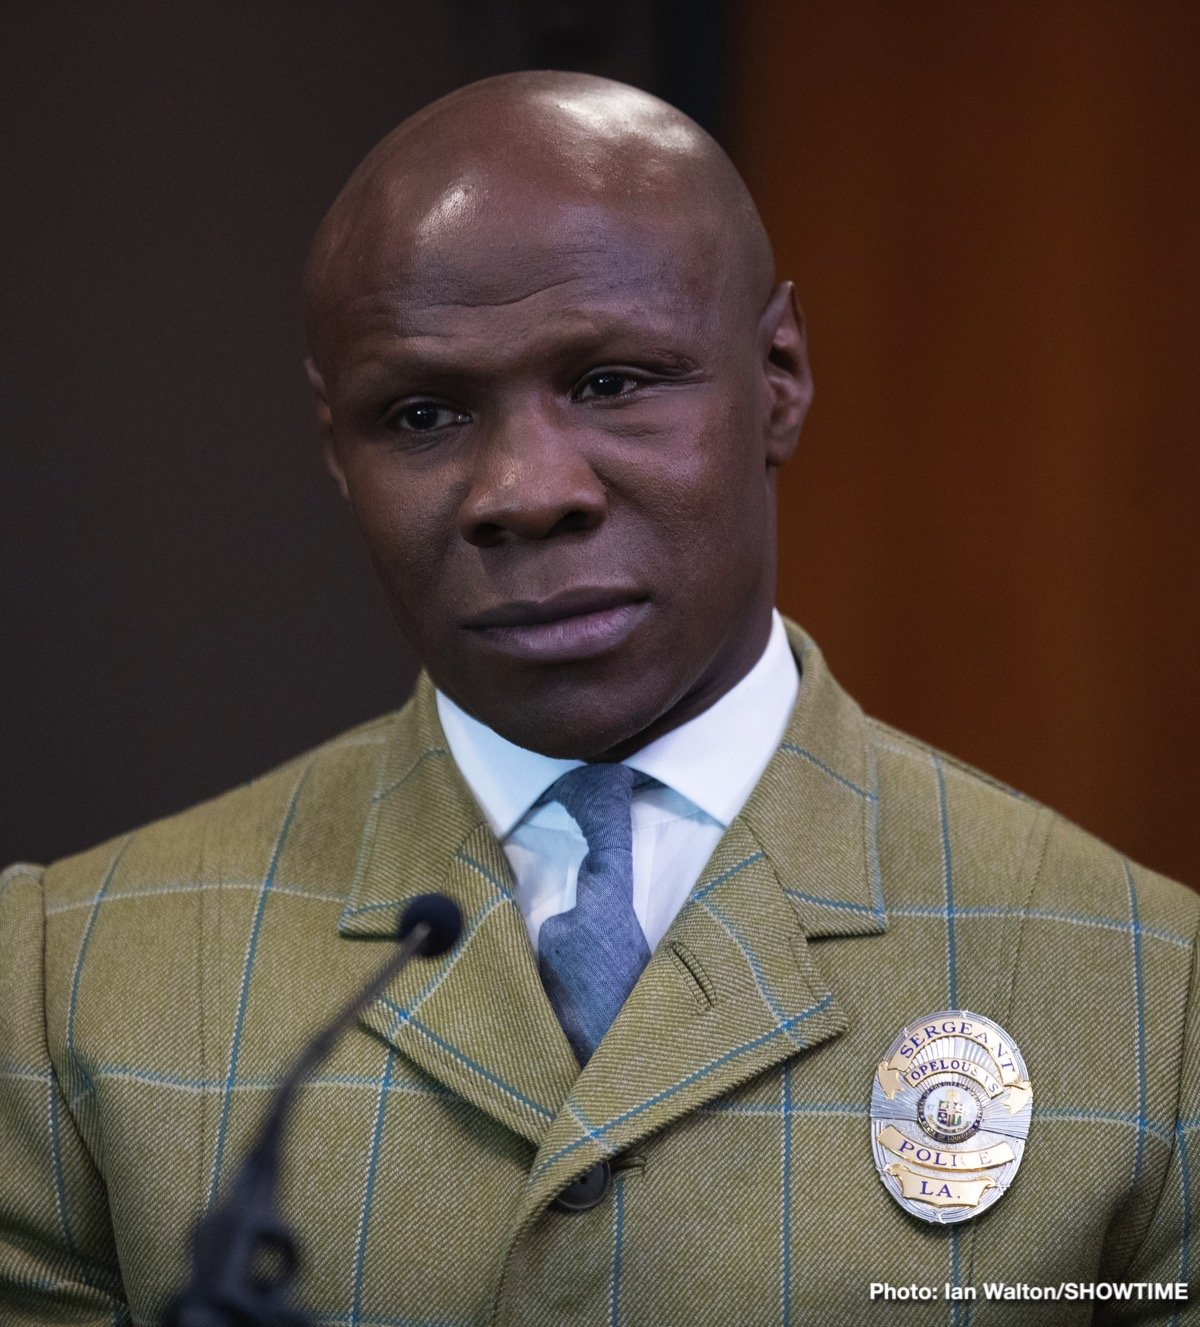 Chris Eubank, Nigel Benn - The fight that took place three long decades ago today, between genuinely fierce rivals Nigel Benn and Chris Eubank, was genuine must-see stuff. Not only for hardcore, passionate boxing fans but for people everywhere in the UK.